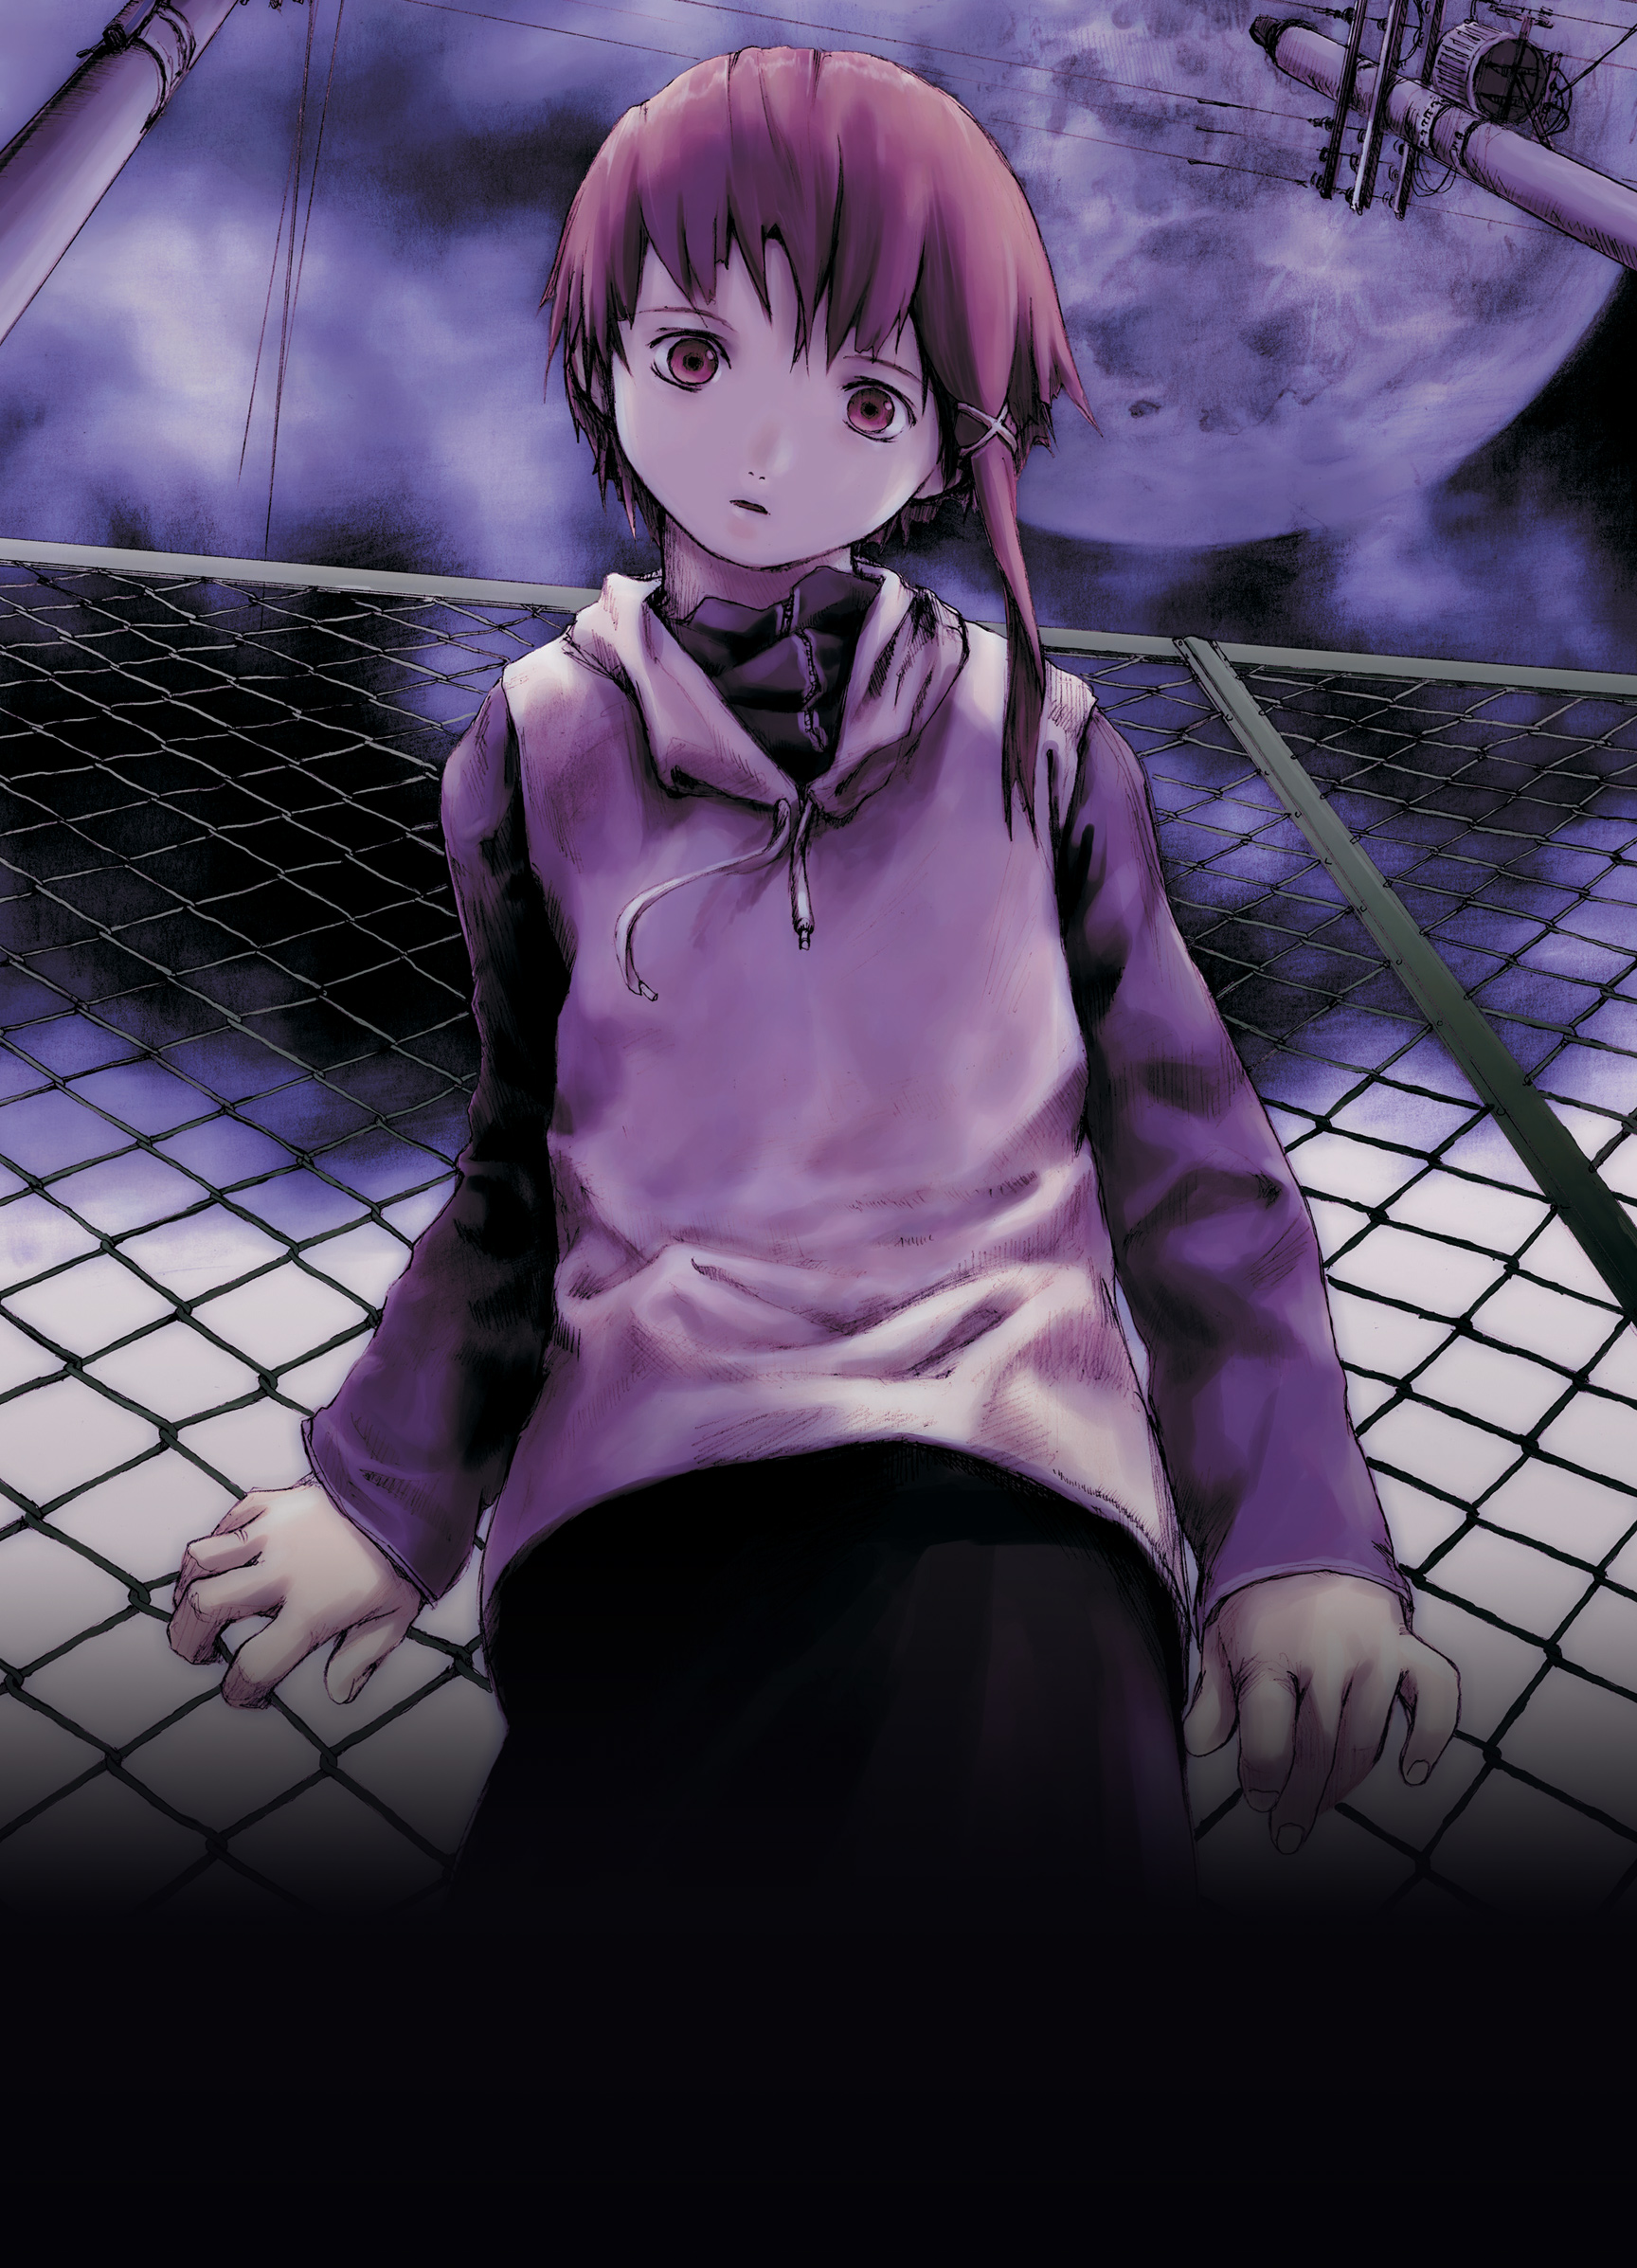 Serial Experiments Lain Sub Indo : serial, experiments, Watch, Serial, Experiments, Episodes, Drama,, Psychological, Anime, Funimation